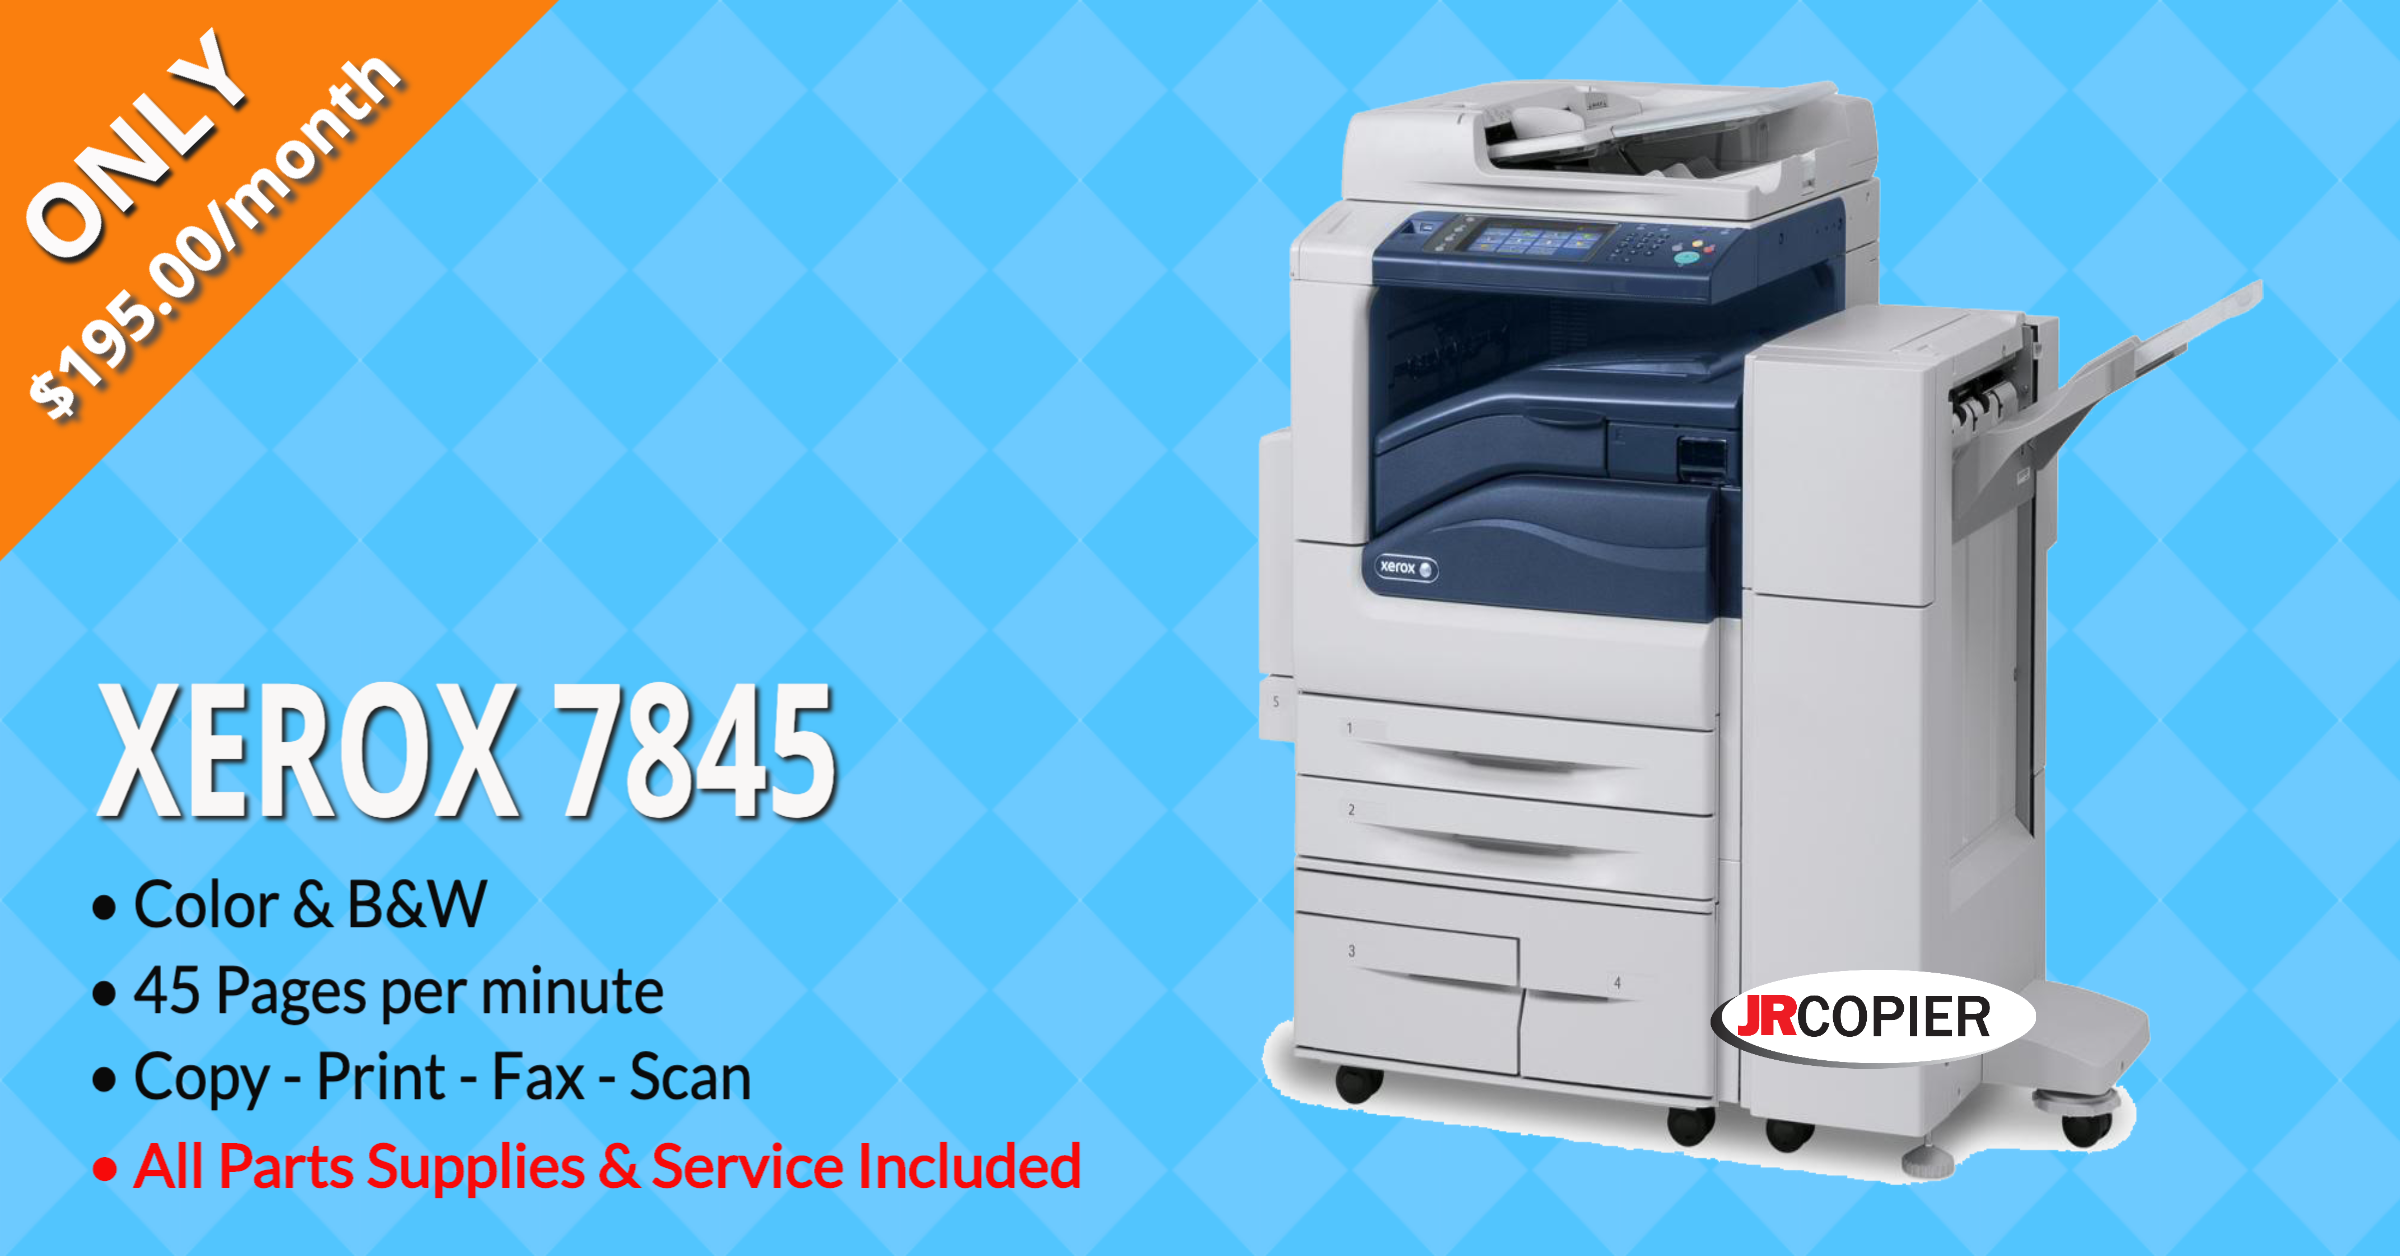 Multifunction Printer Sales 33029, 33330, 33331, 33332